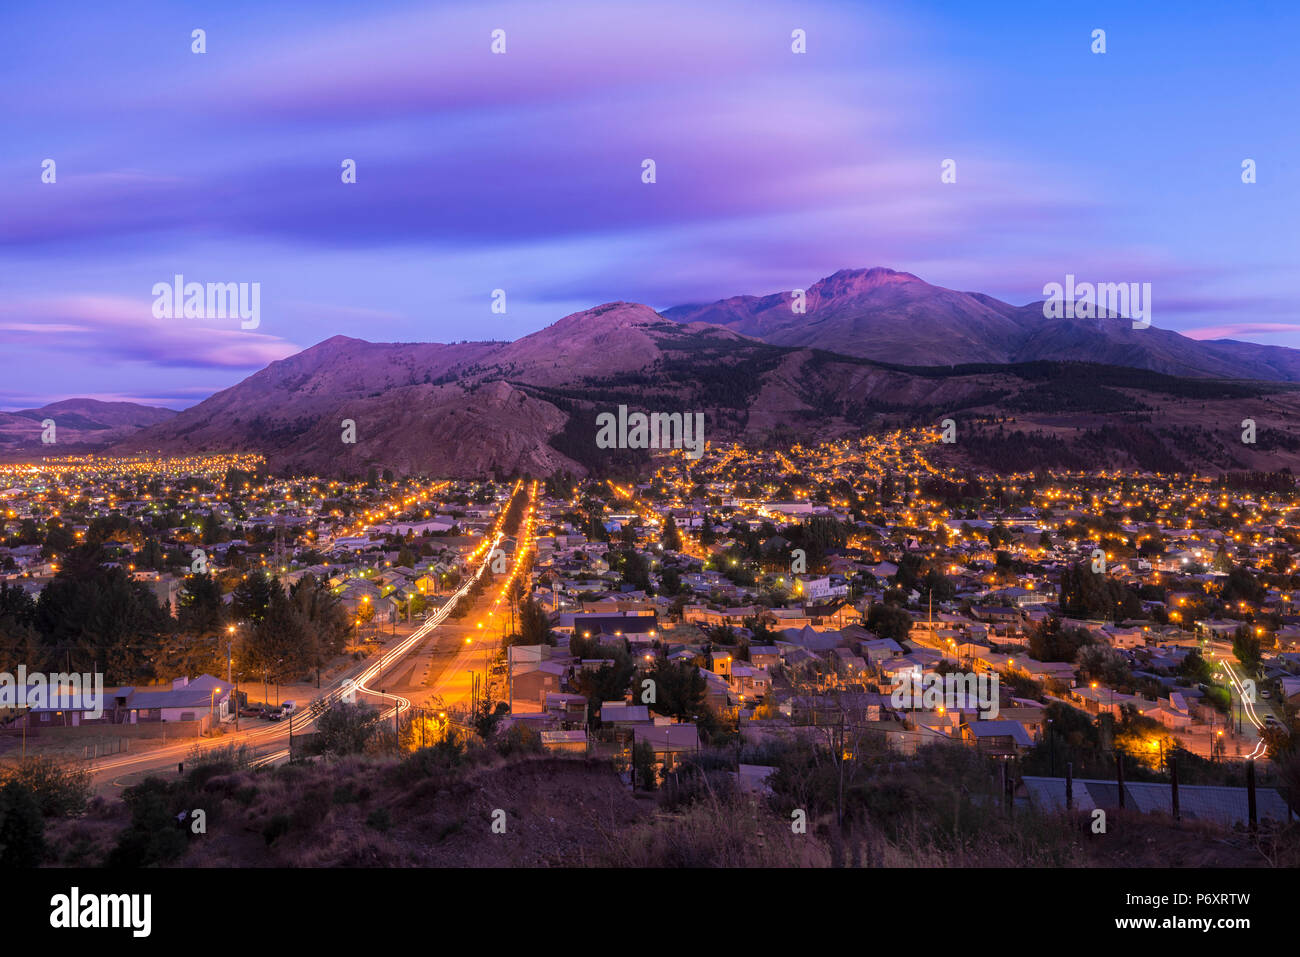 South America, Argentina, Patagonia, Rio Negro, Esquel at night - Stock Image